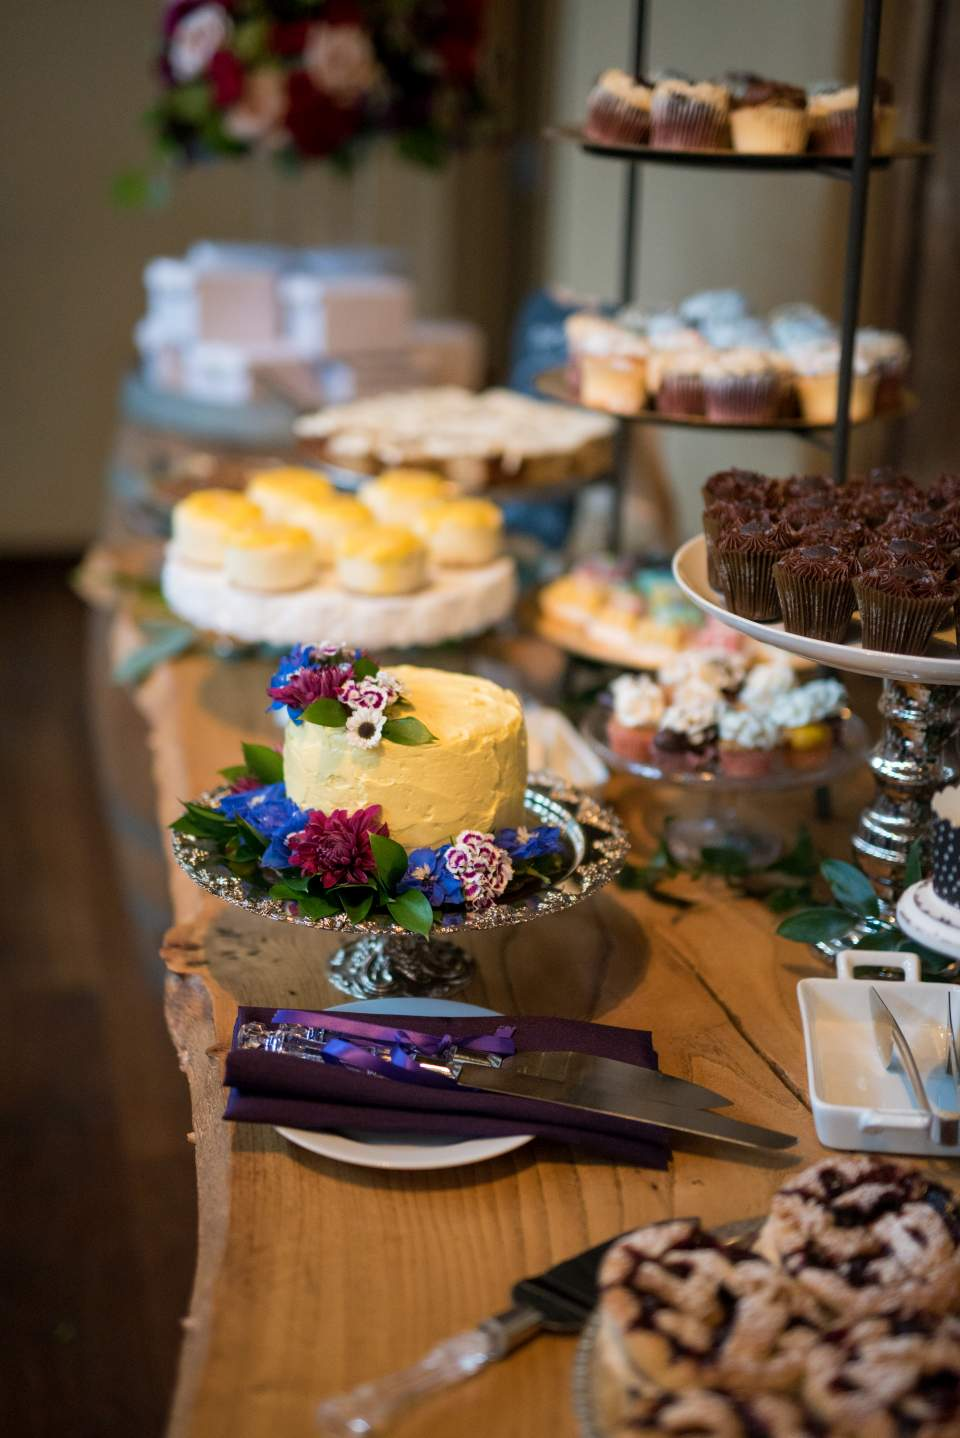 guests bring wedding desserts for homemade dessert bar